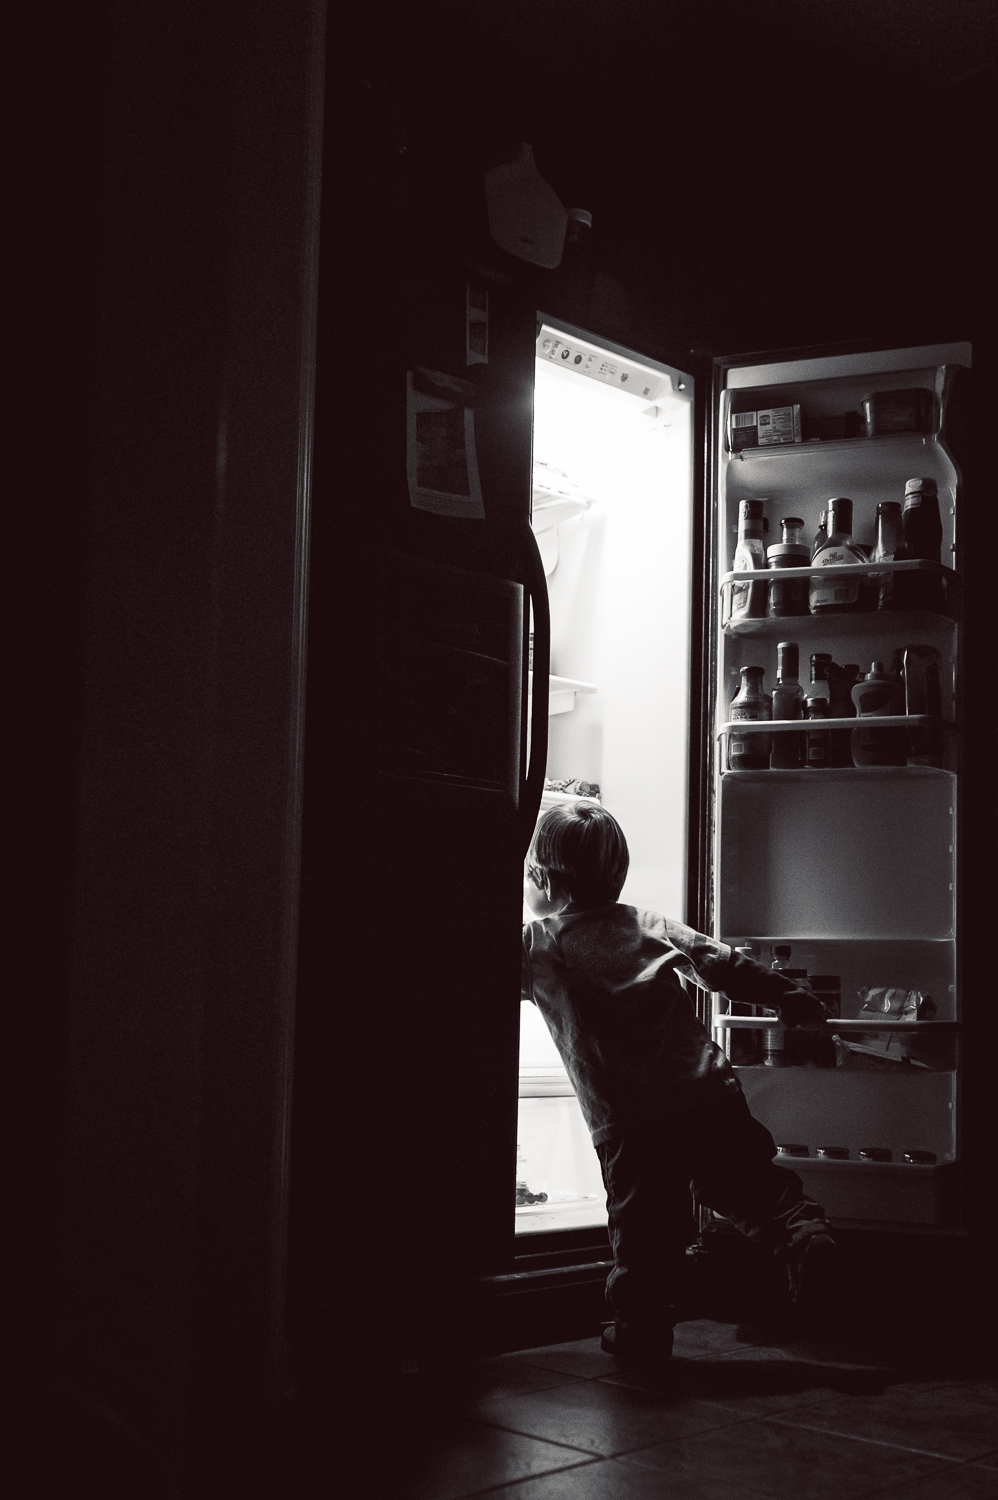 little boy reaching in refrigerator | Huntsville AL photographer